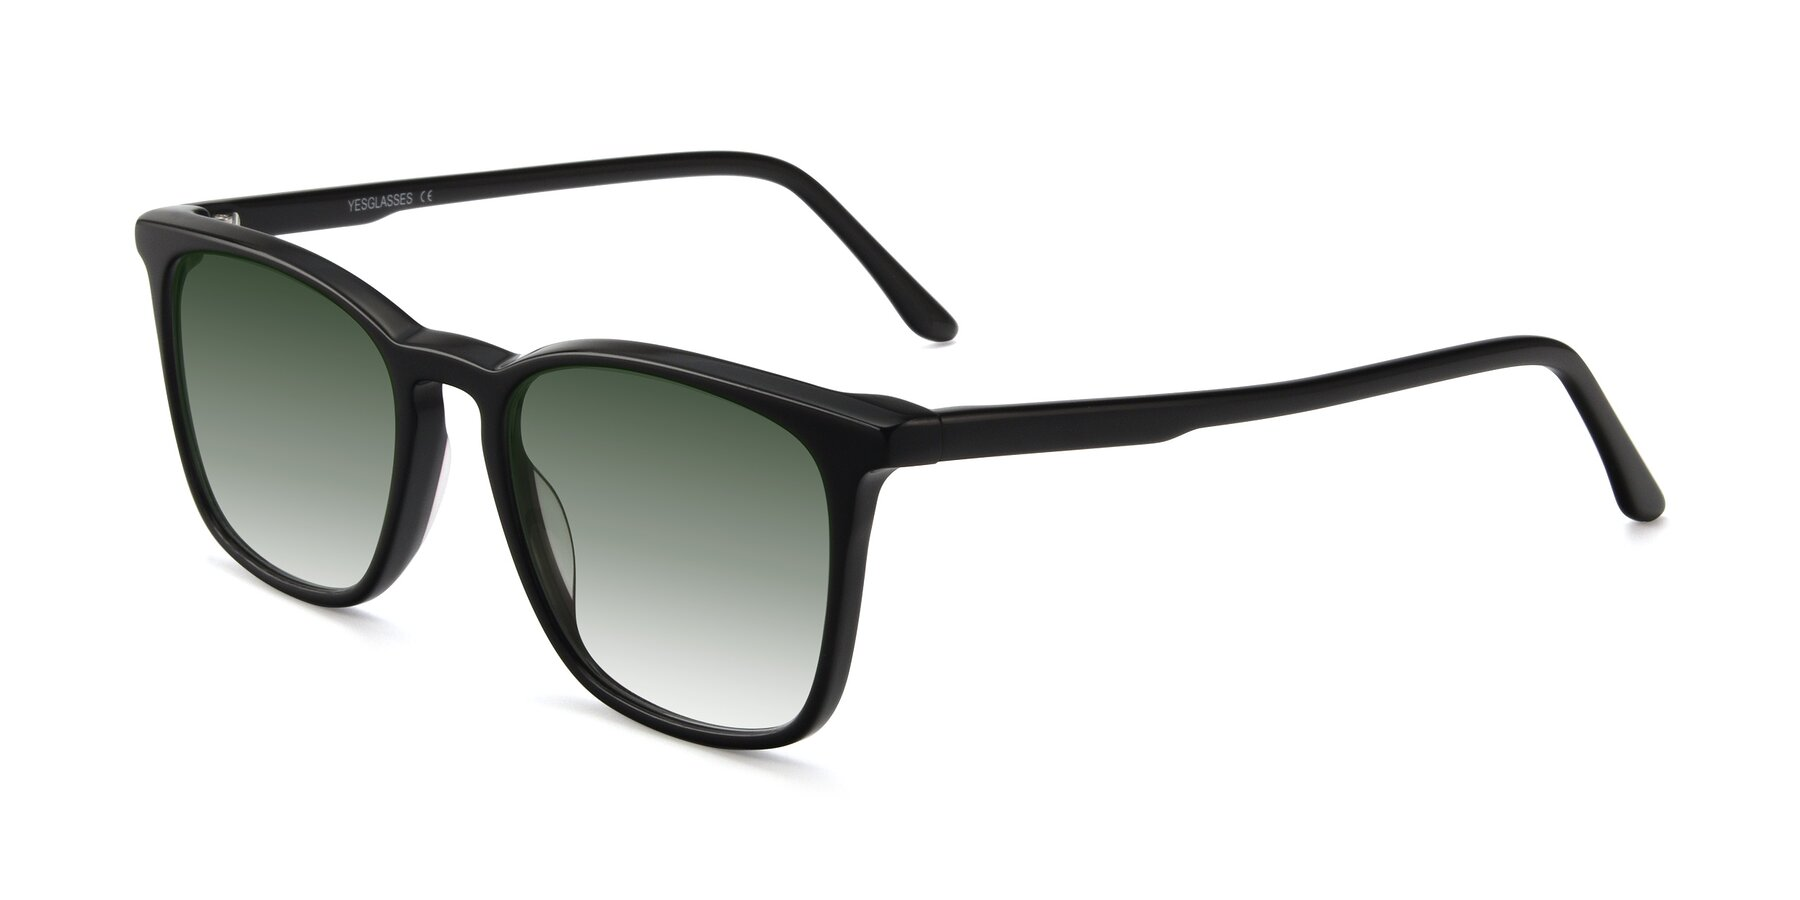 Angle of Vigor in Black with Green Gradient Lenses